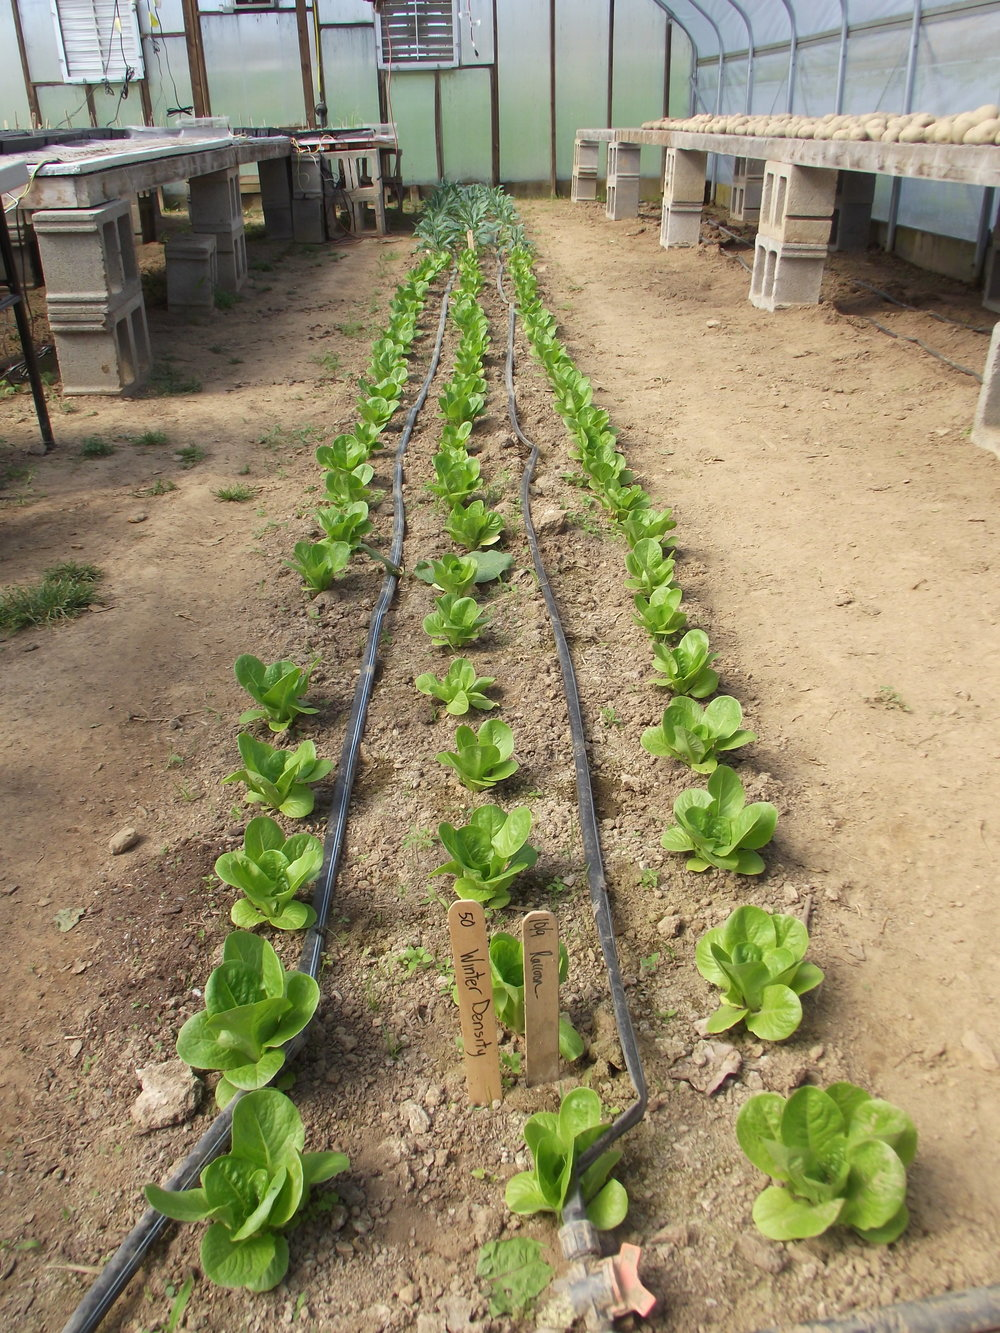 heads of romaine lettuce growing in a greenhouse